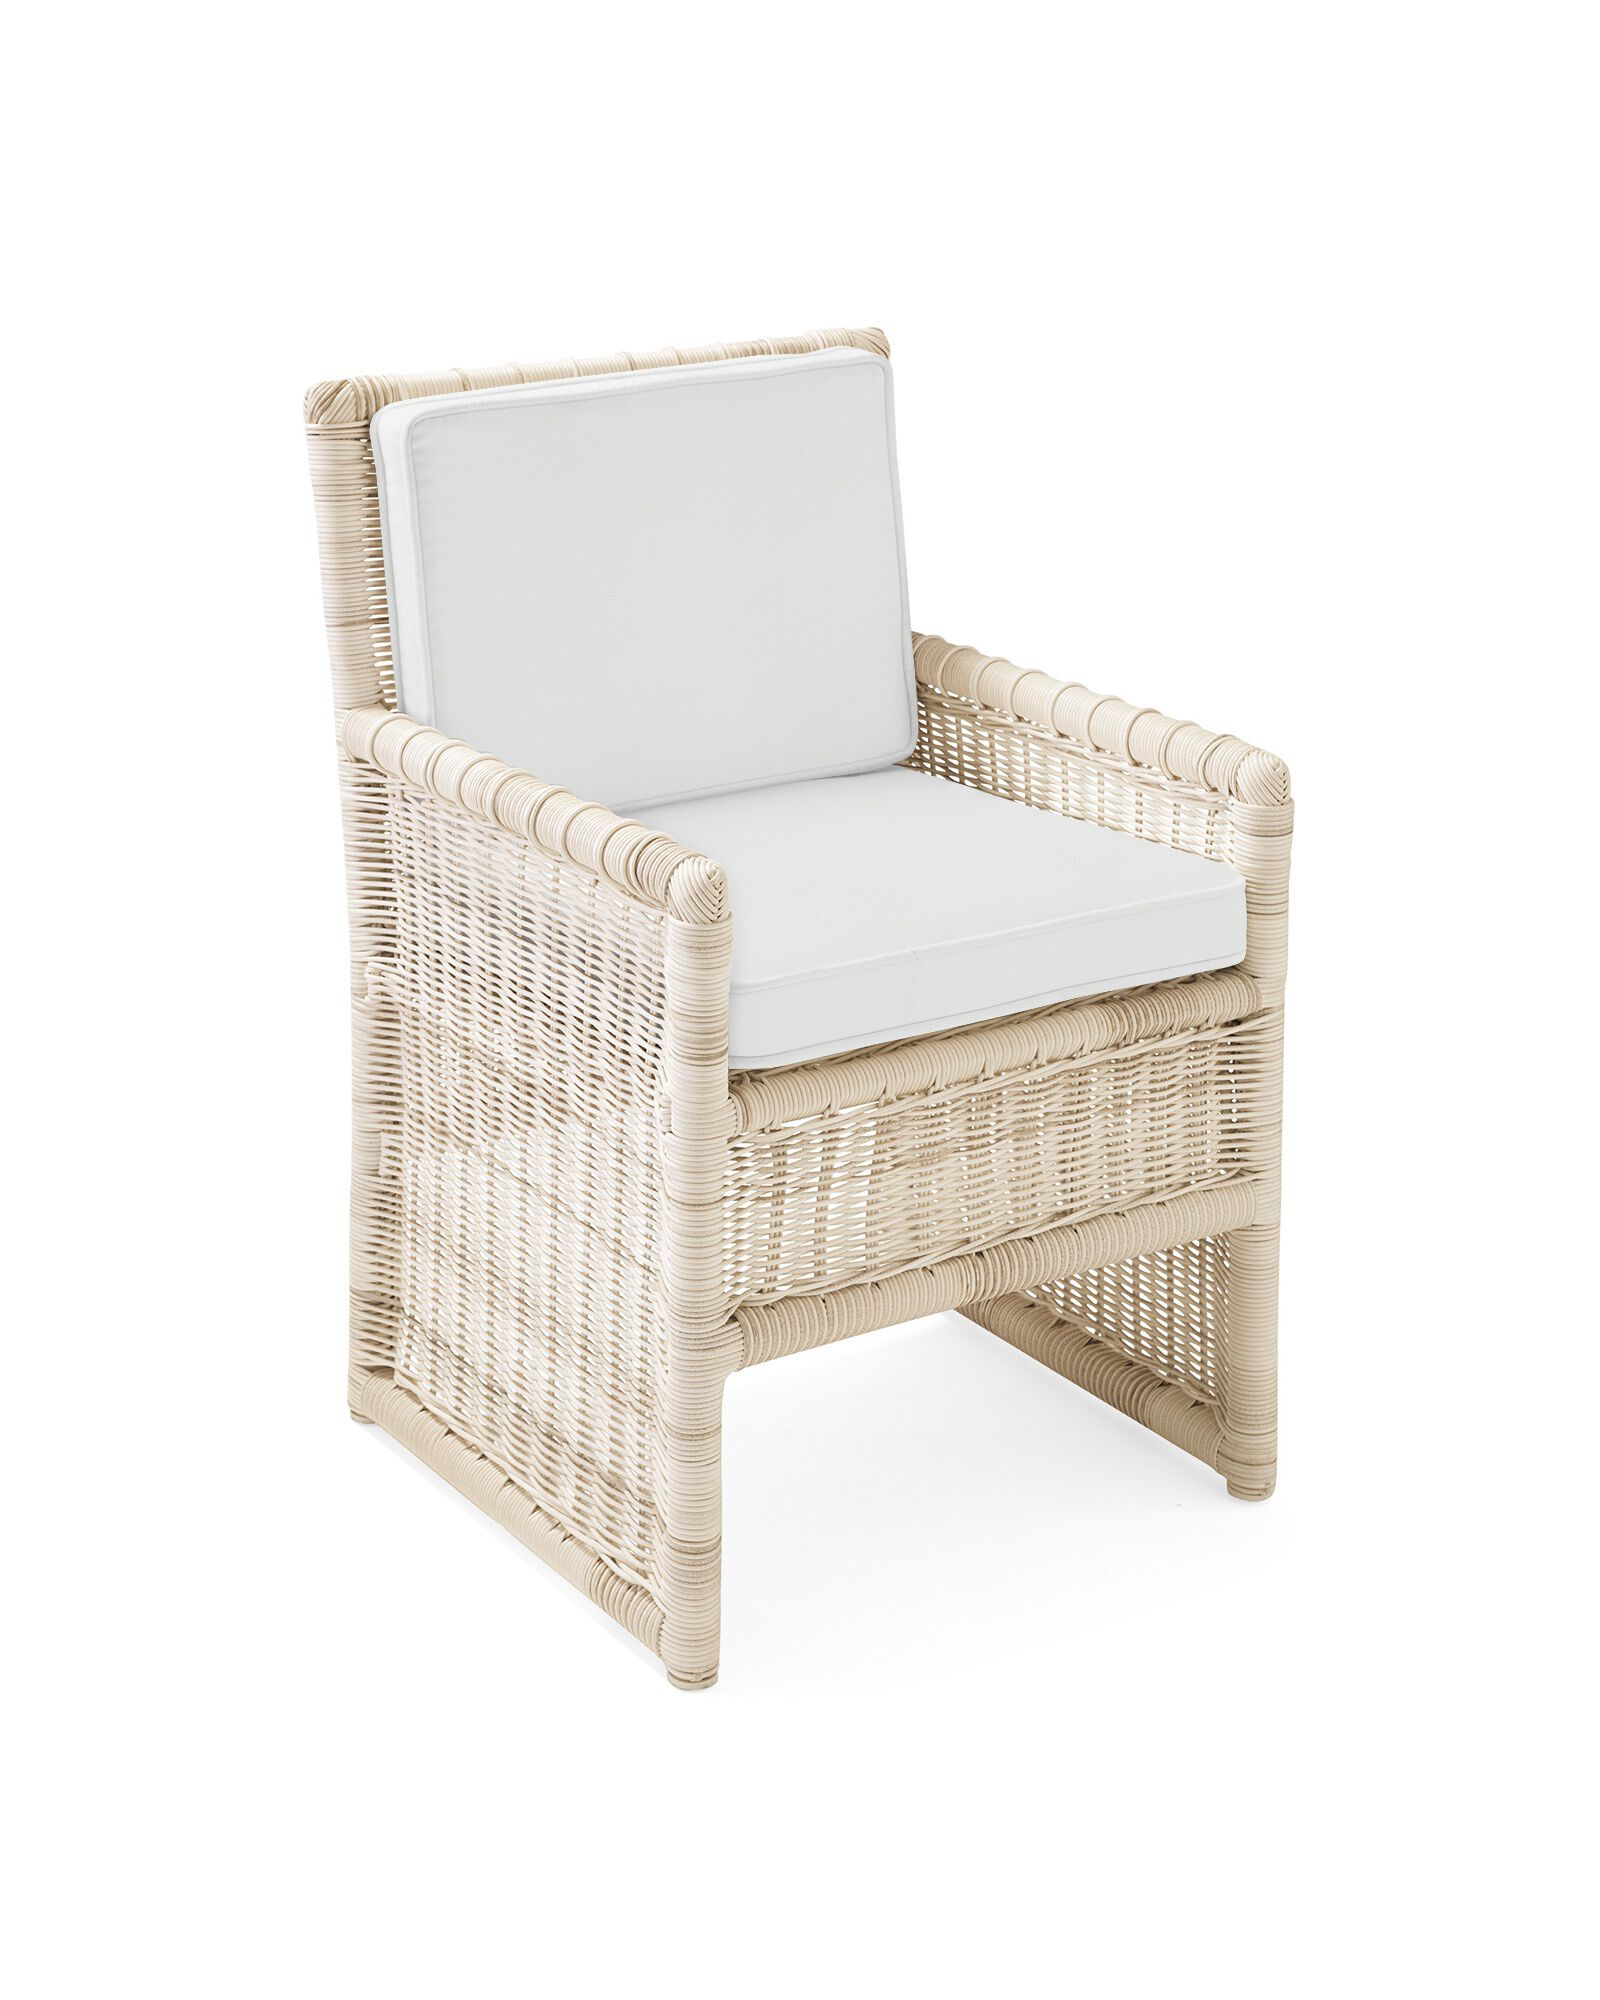 Cushion Cover for Pacifica Dining Chair, Sunbrella Canvas White